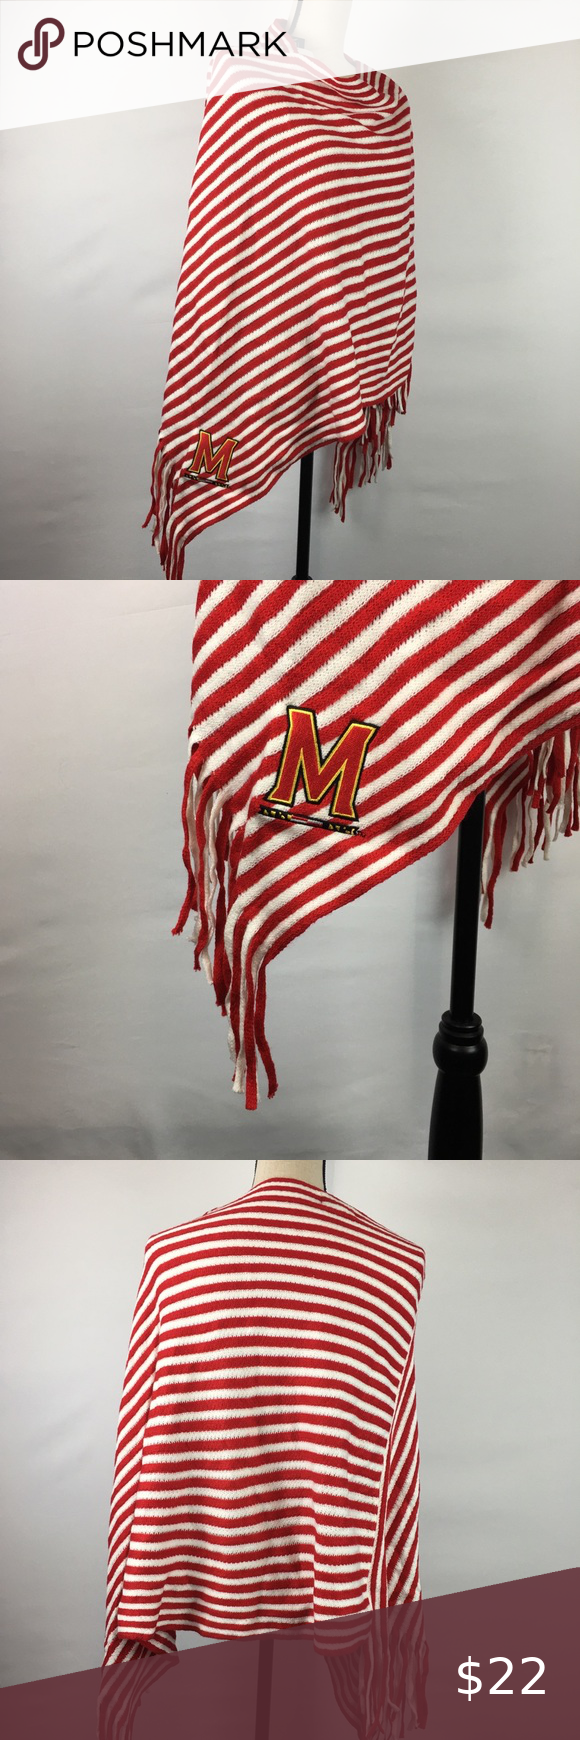 University Of Maryland College Poncho In 2020 Clothes Design Red And White Stripes Fashion Design